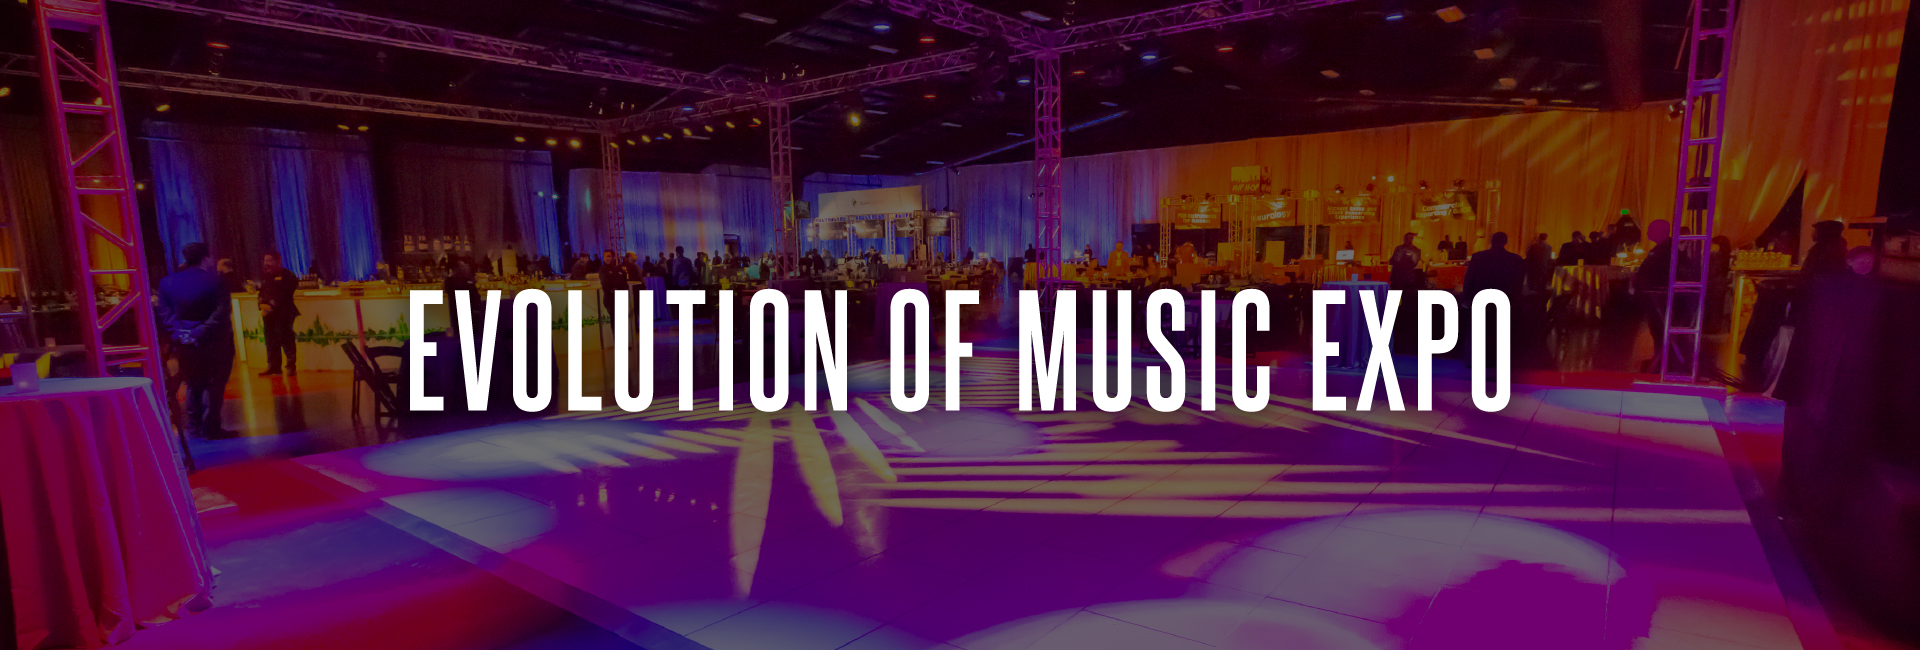 Evolution of Music Expo